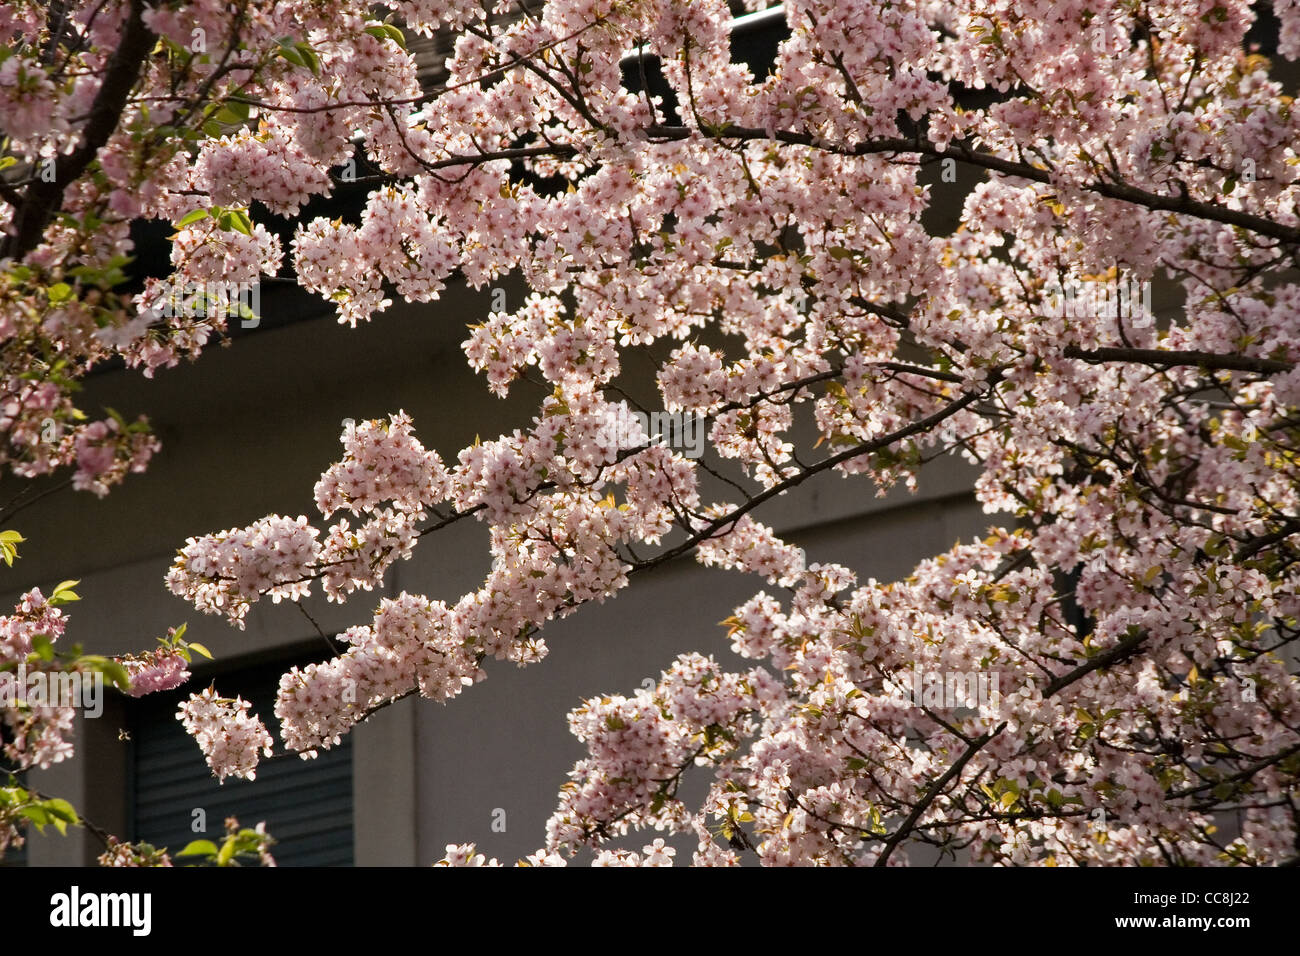 Fruit tree in blossom by the house - Stock Image